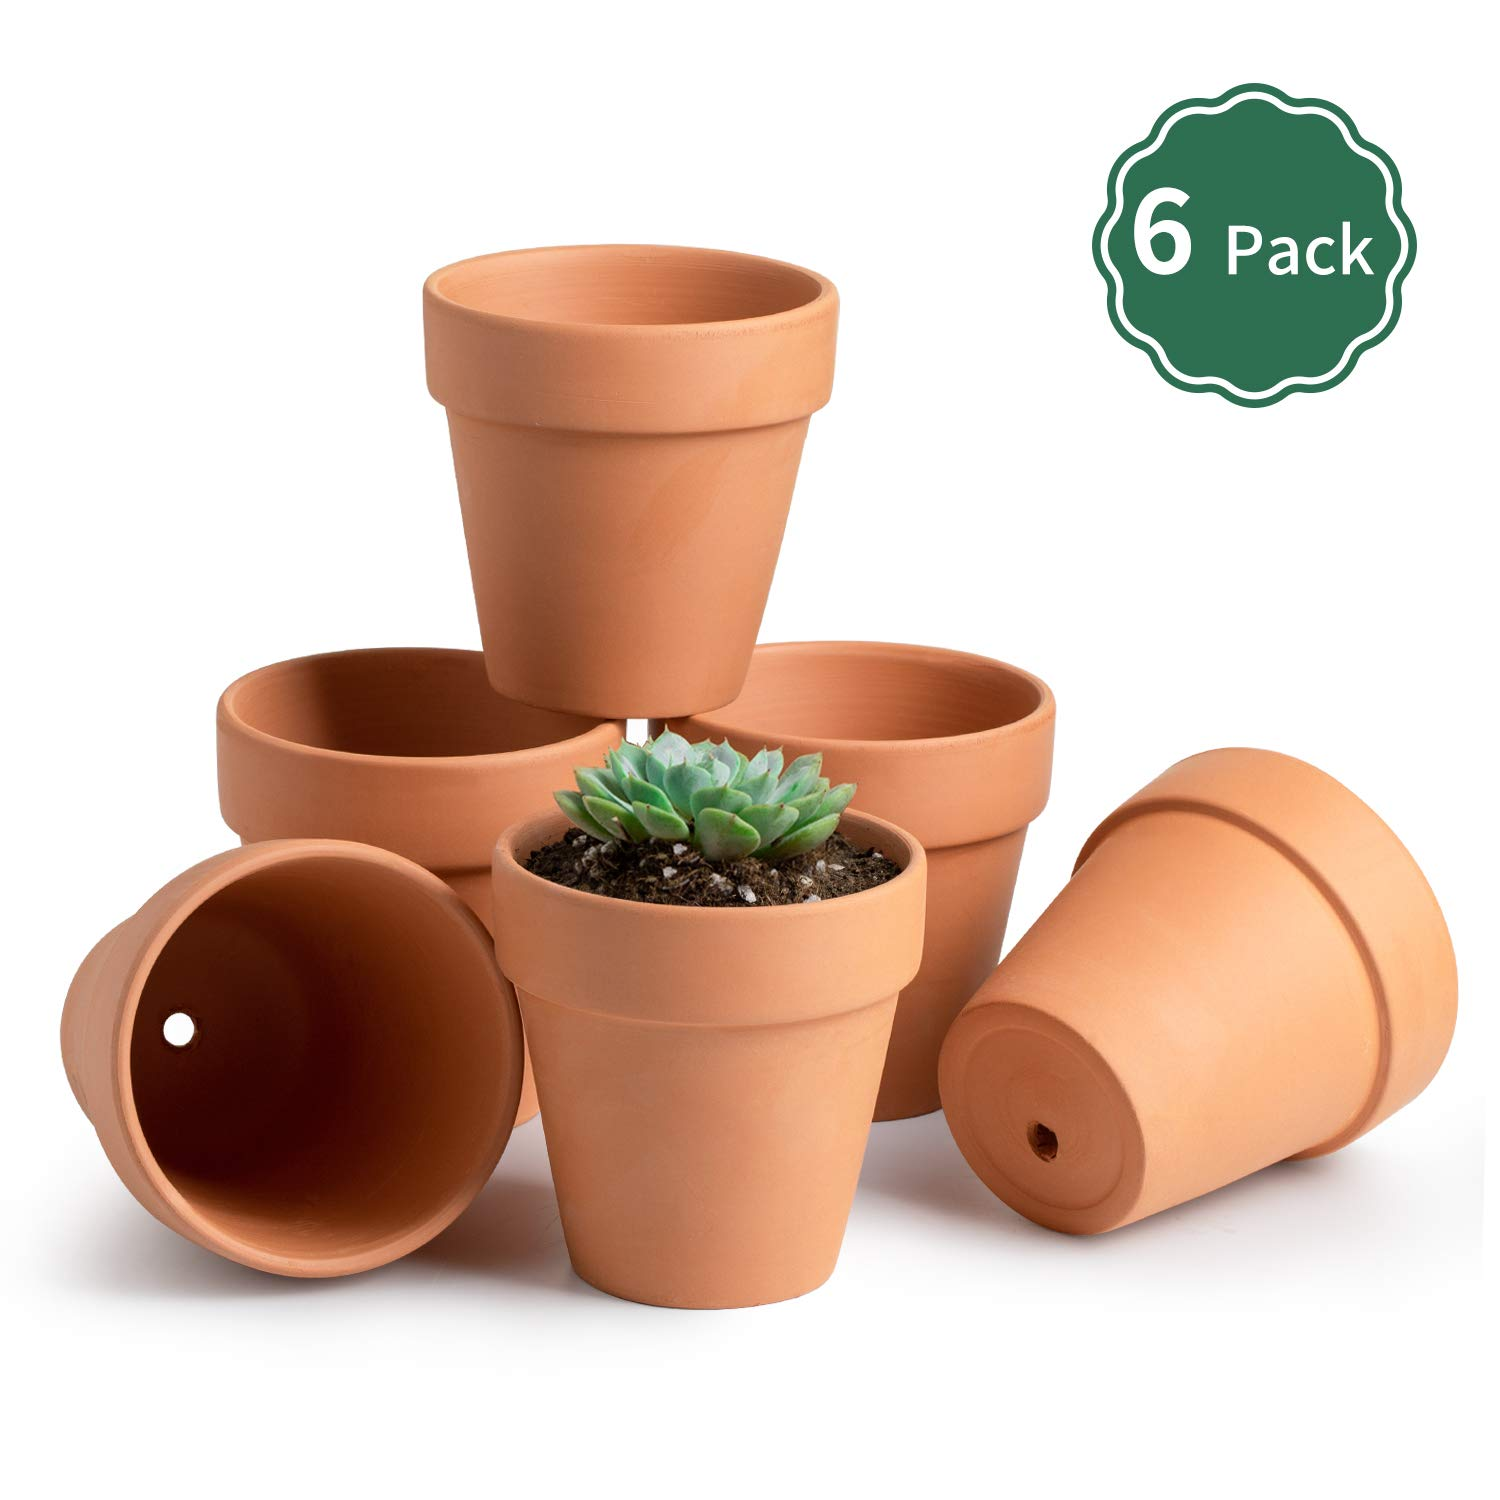 Potey Terracotta Flower Pot Clay Planter – 4.1 with Drain Hole for Succulent Cactus – Set of 6